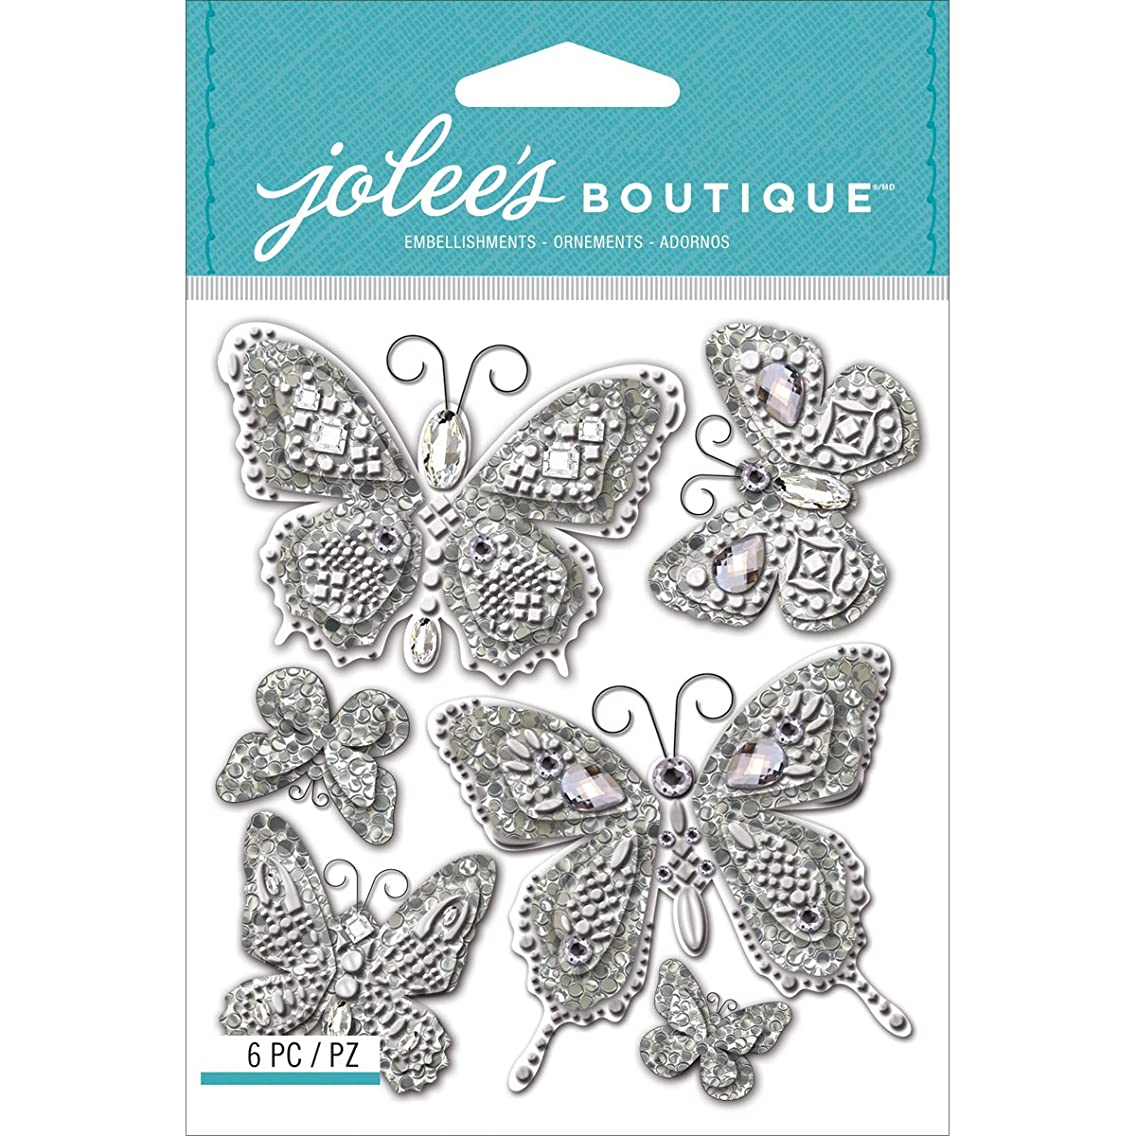 Jolee's Boutique Dimensional Stickers, Butterfly Bling dbgfvcv40